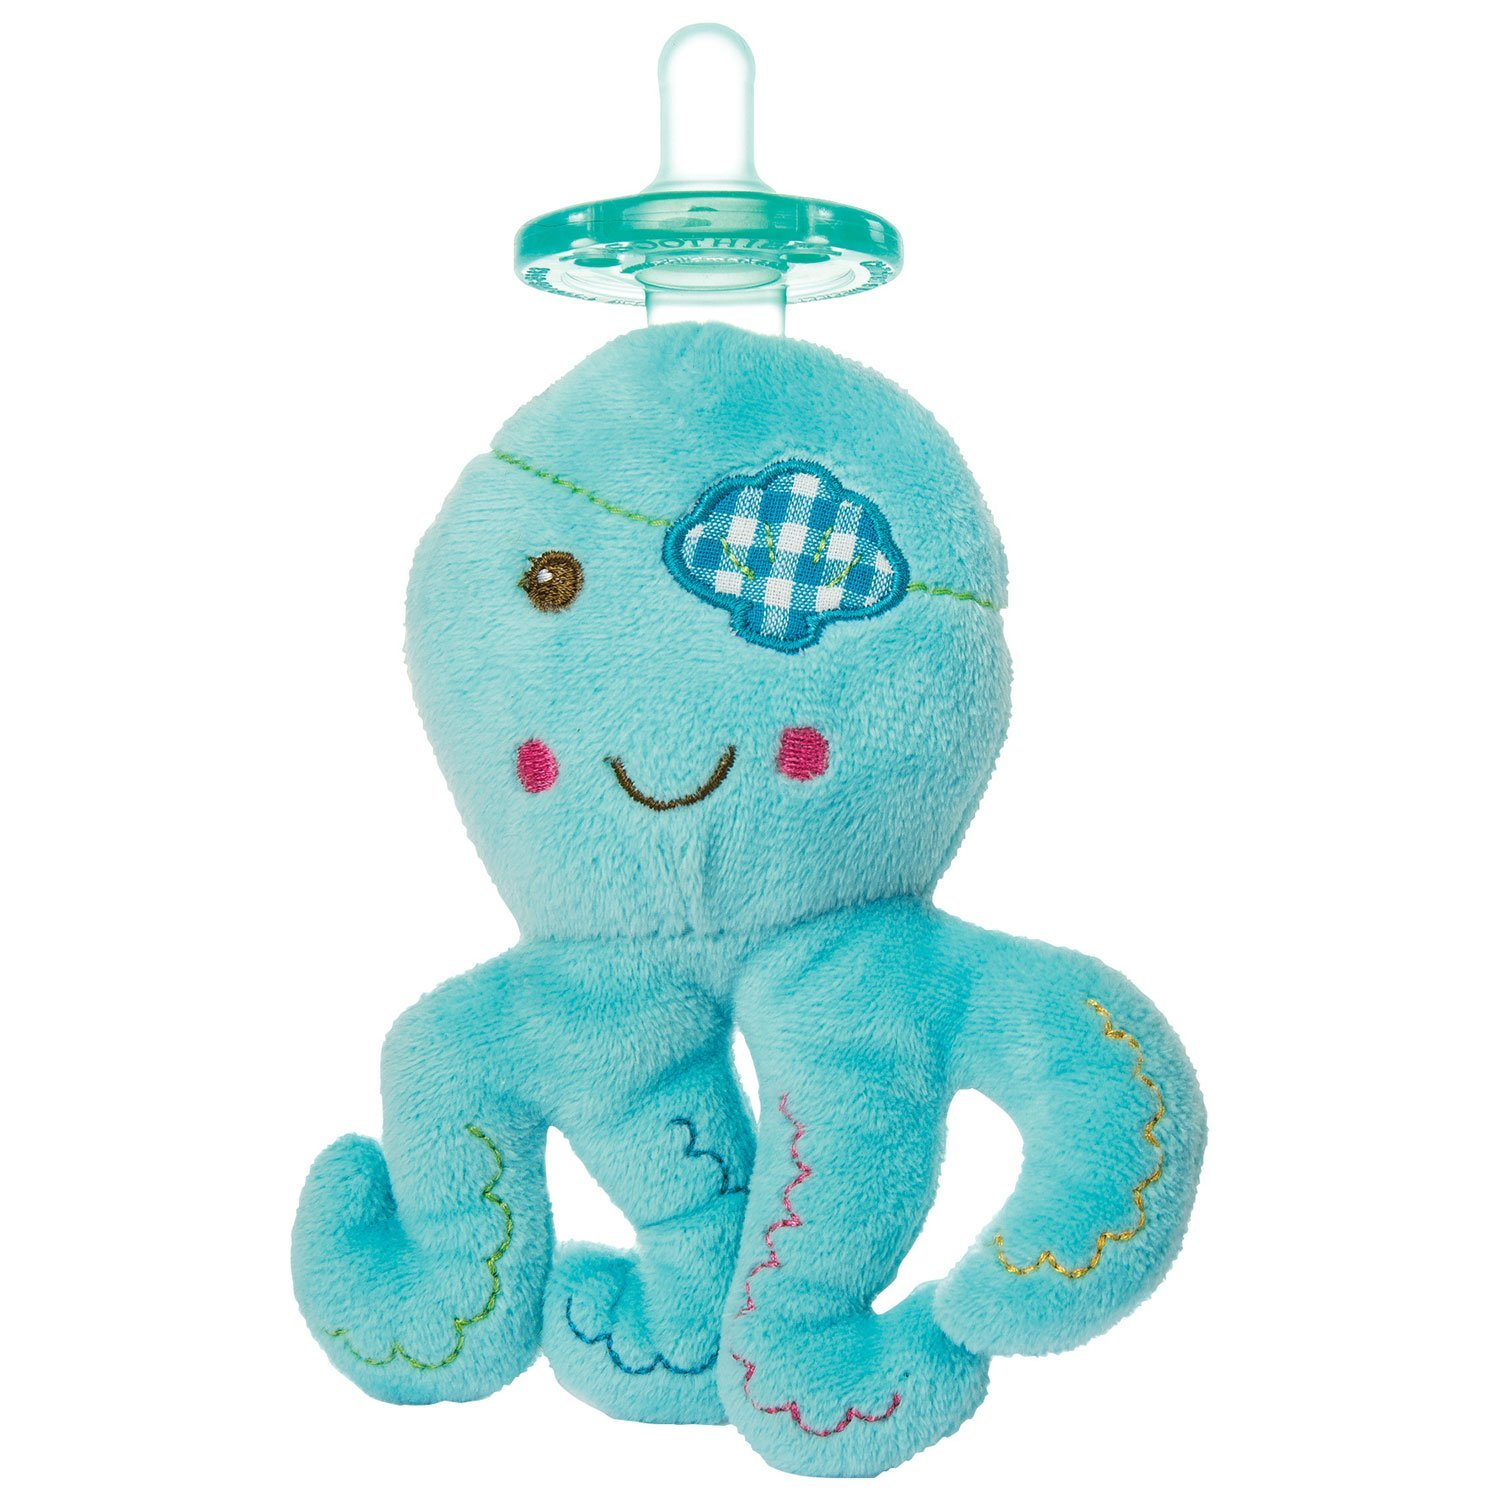 WubbaNub Baby Buccanneer Octopus Pacifier Mary Meyer Limited Edition by Wubbanub